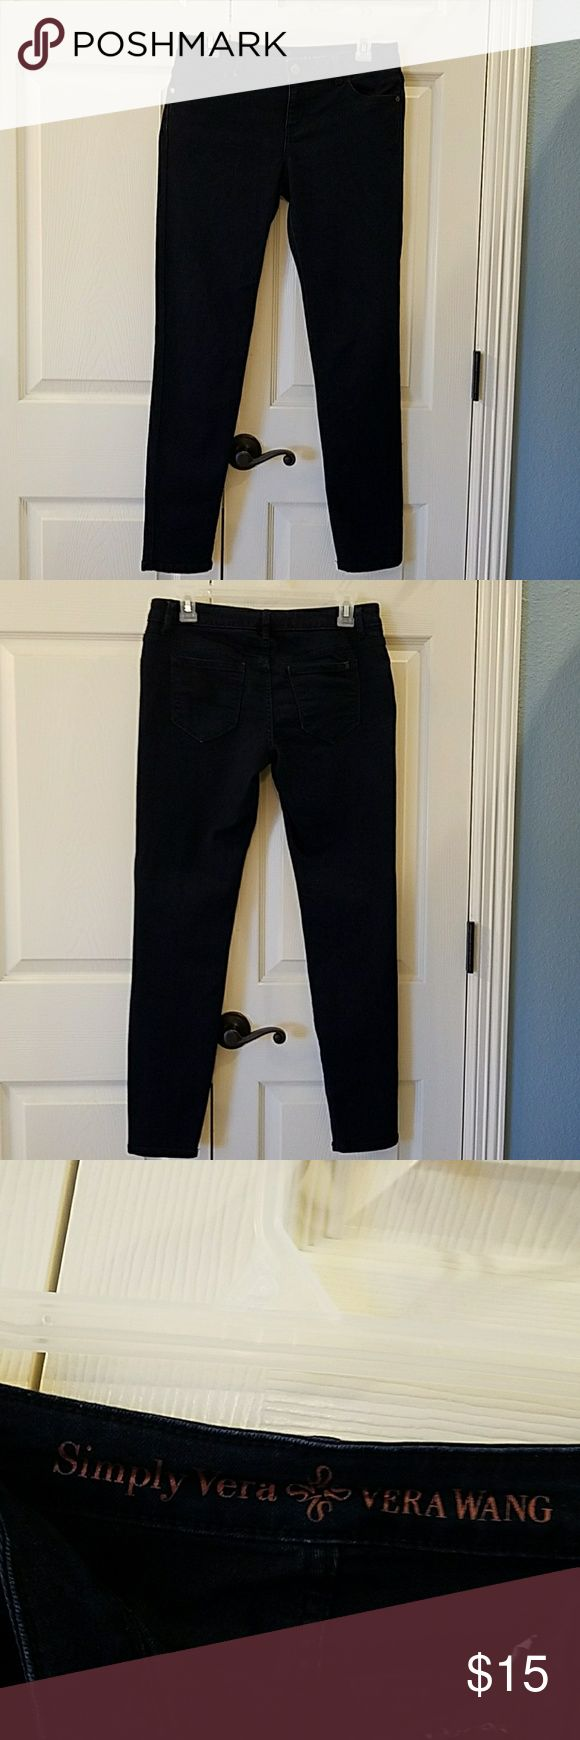 Simply Vera Vera Wang Skinny Ankle Jeans EUC Very dark blue wash skinny ankle jeans.  Only worn a couple tines.  No flaws. Simply Vera Vera Wang Jeans Skinny